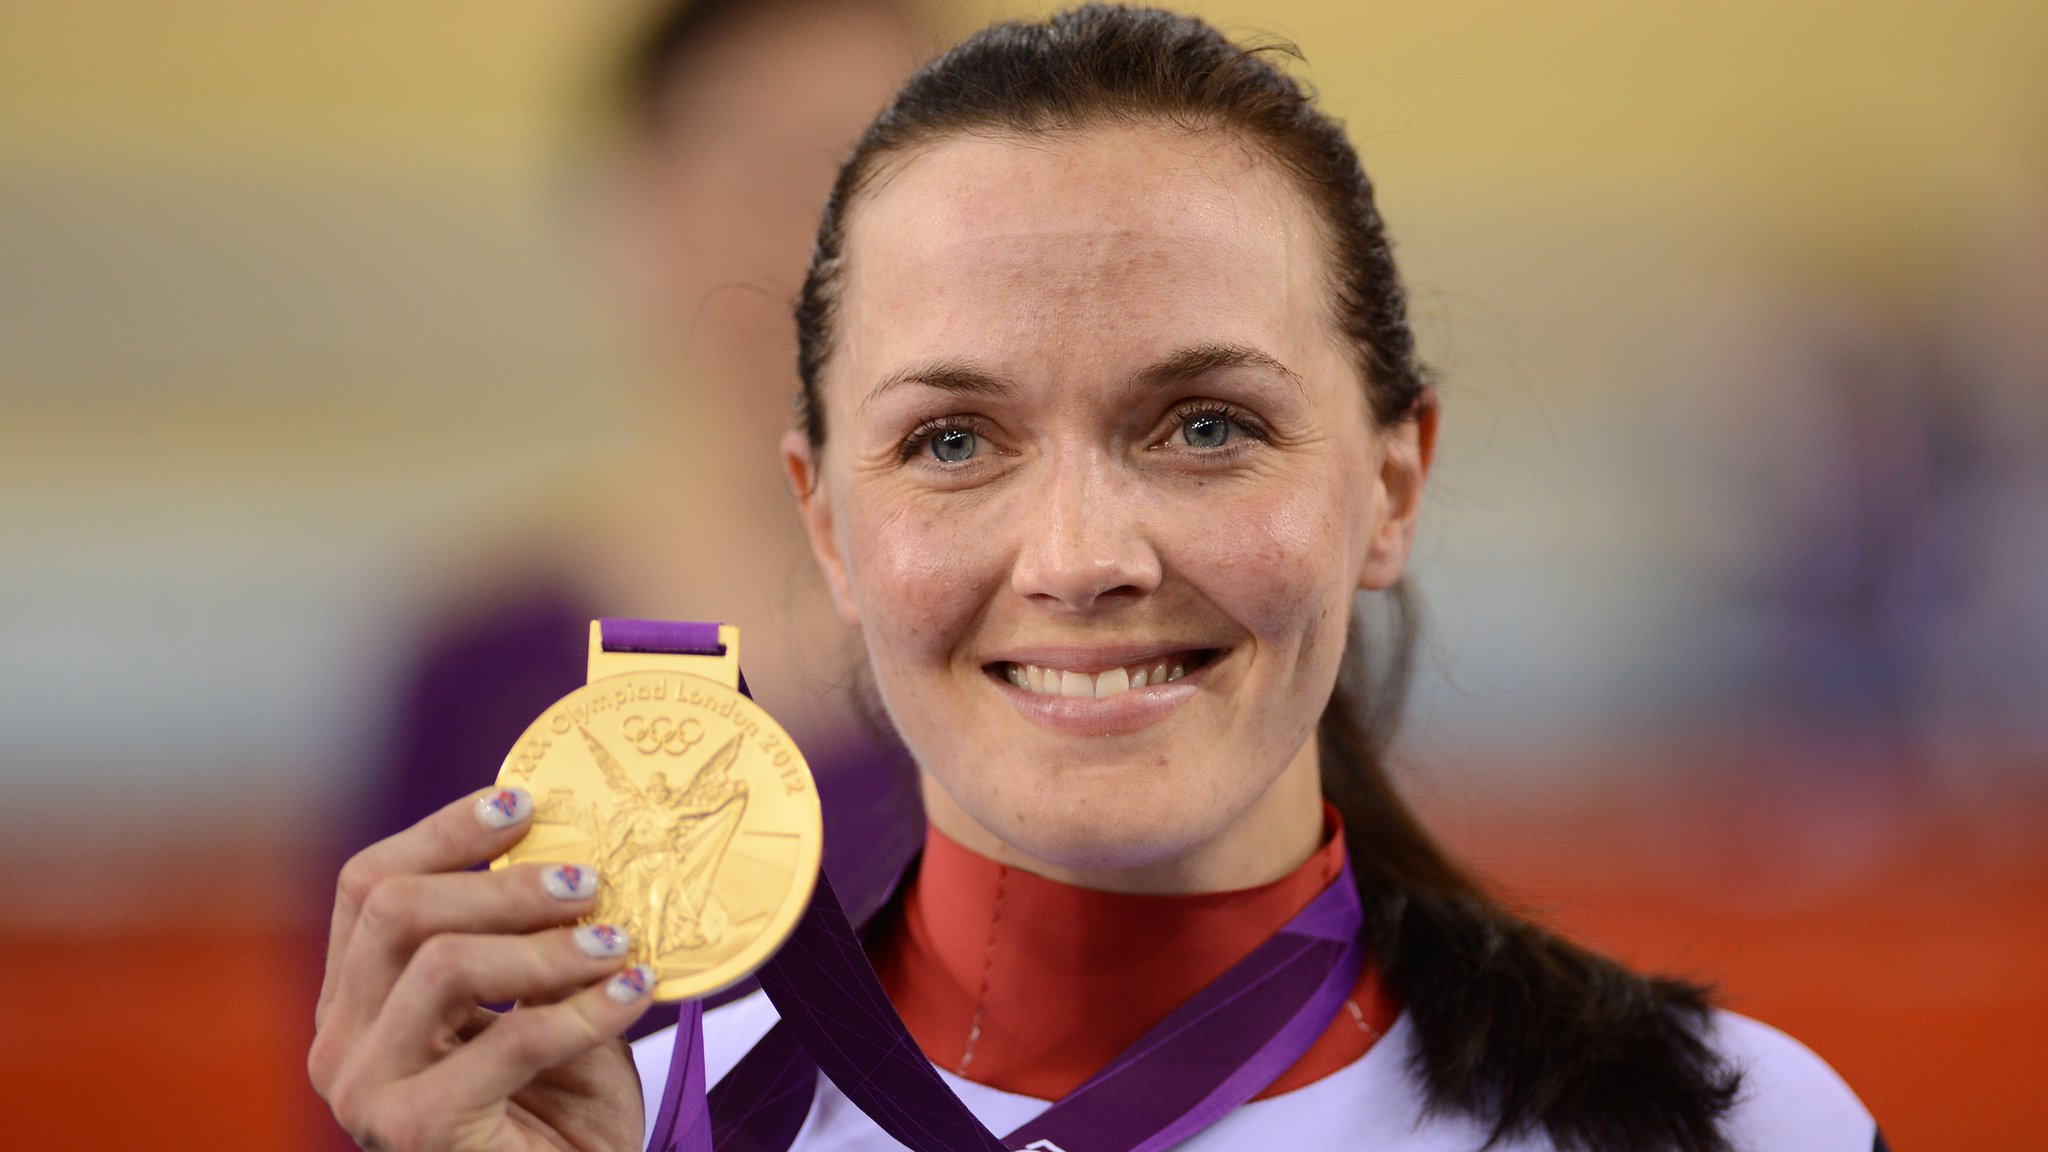 Victoria Pendleton: Olympic champion 'turns corner' after suicide thoughts